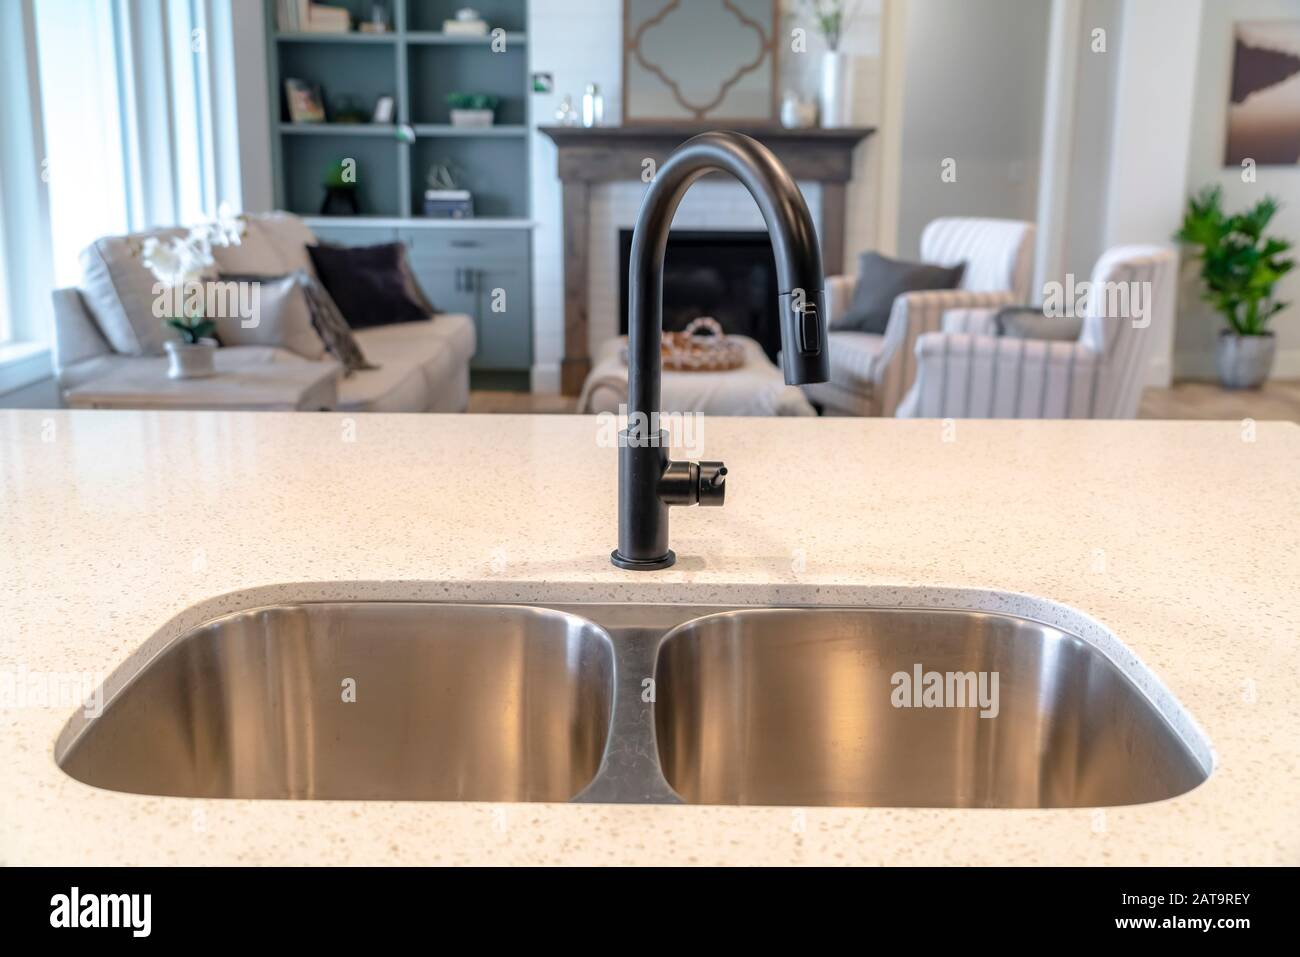 Double Kitchen Sink High Resolution Stock Photography And Images Alamy